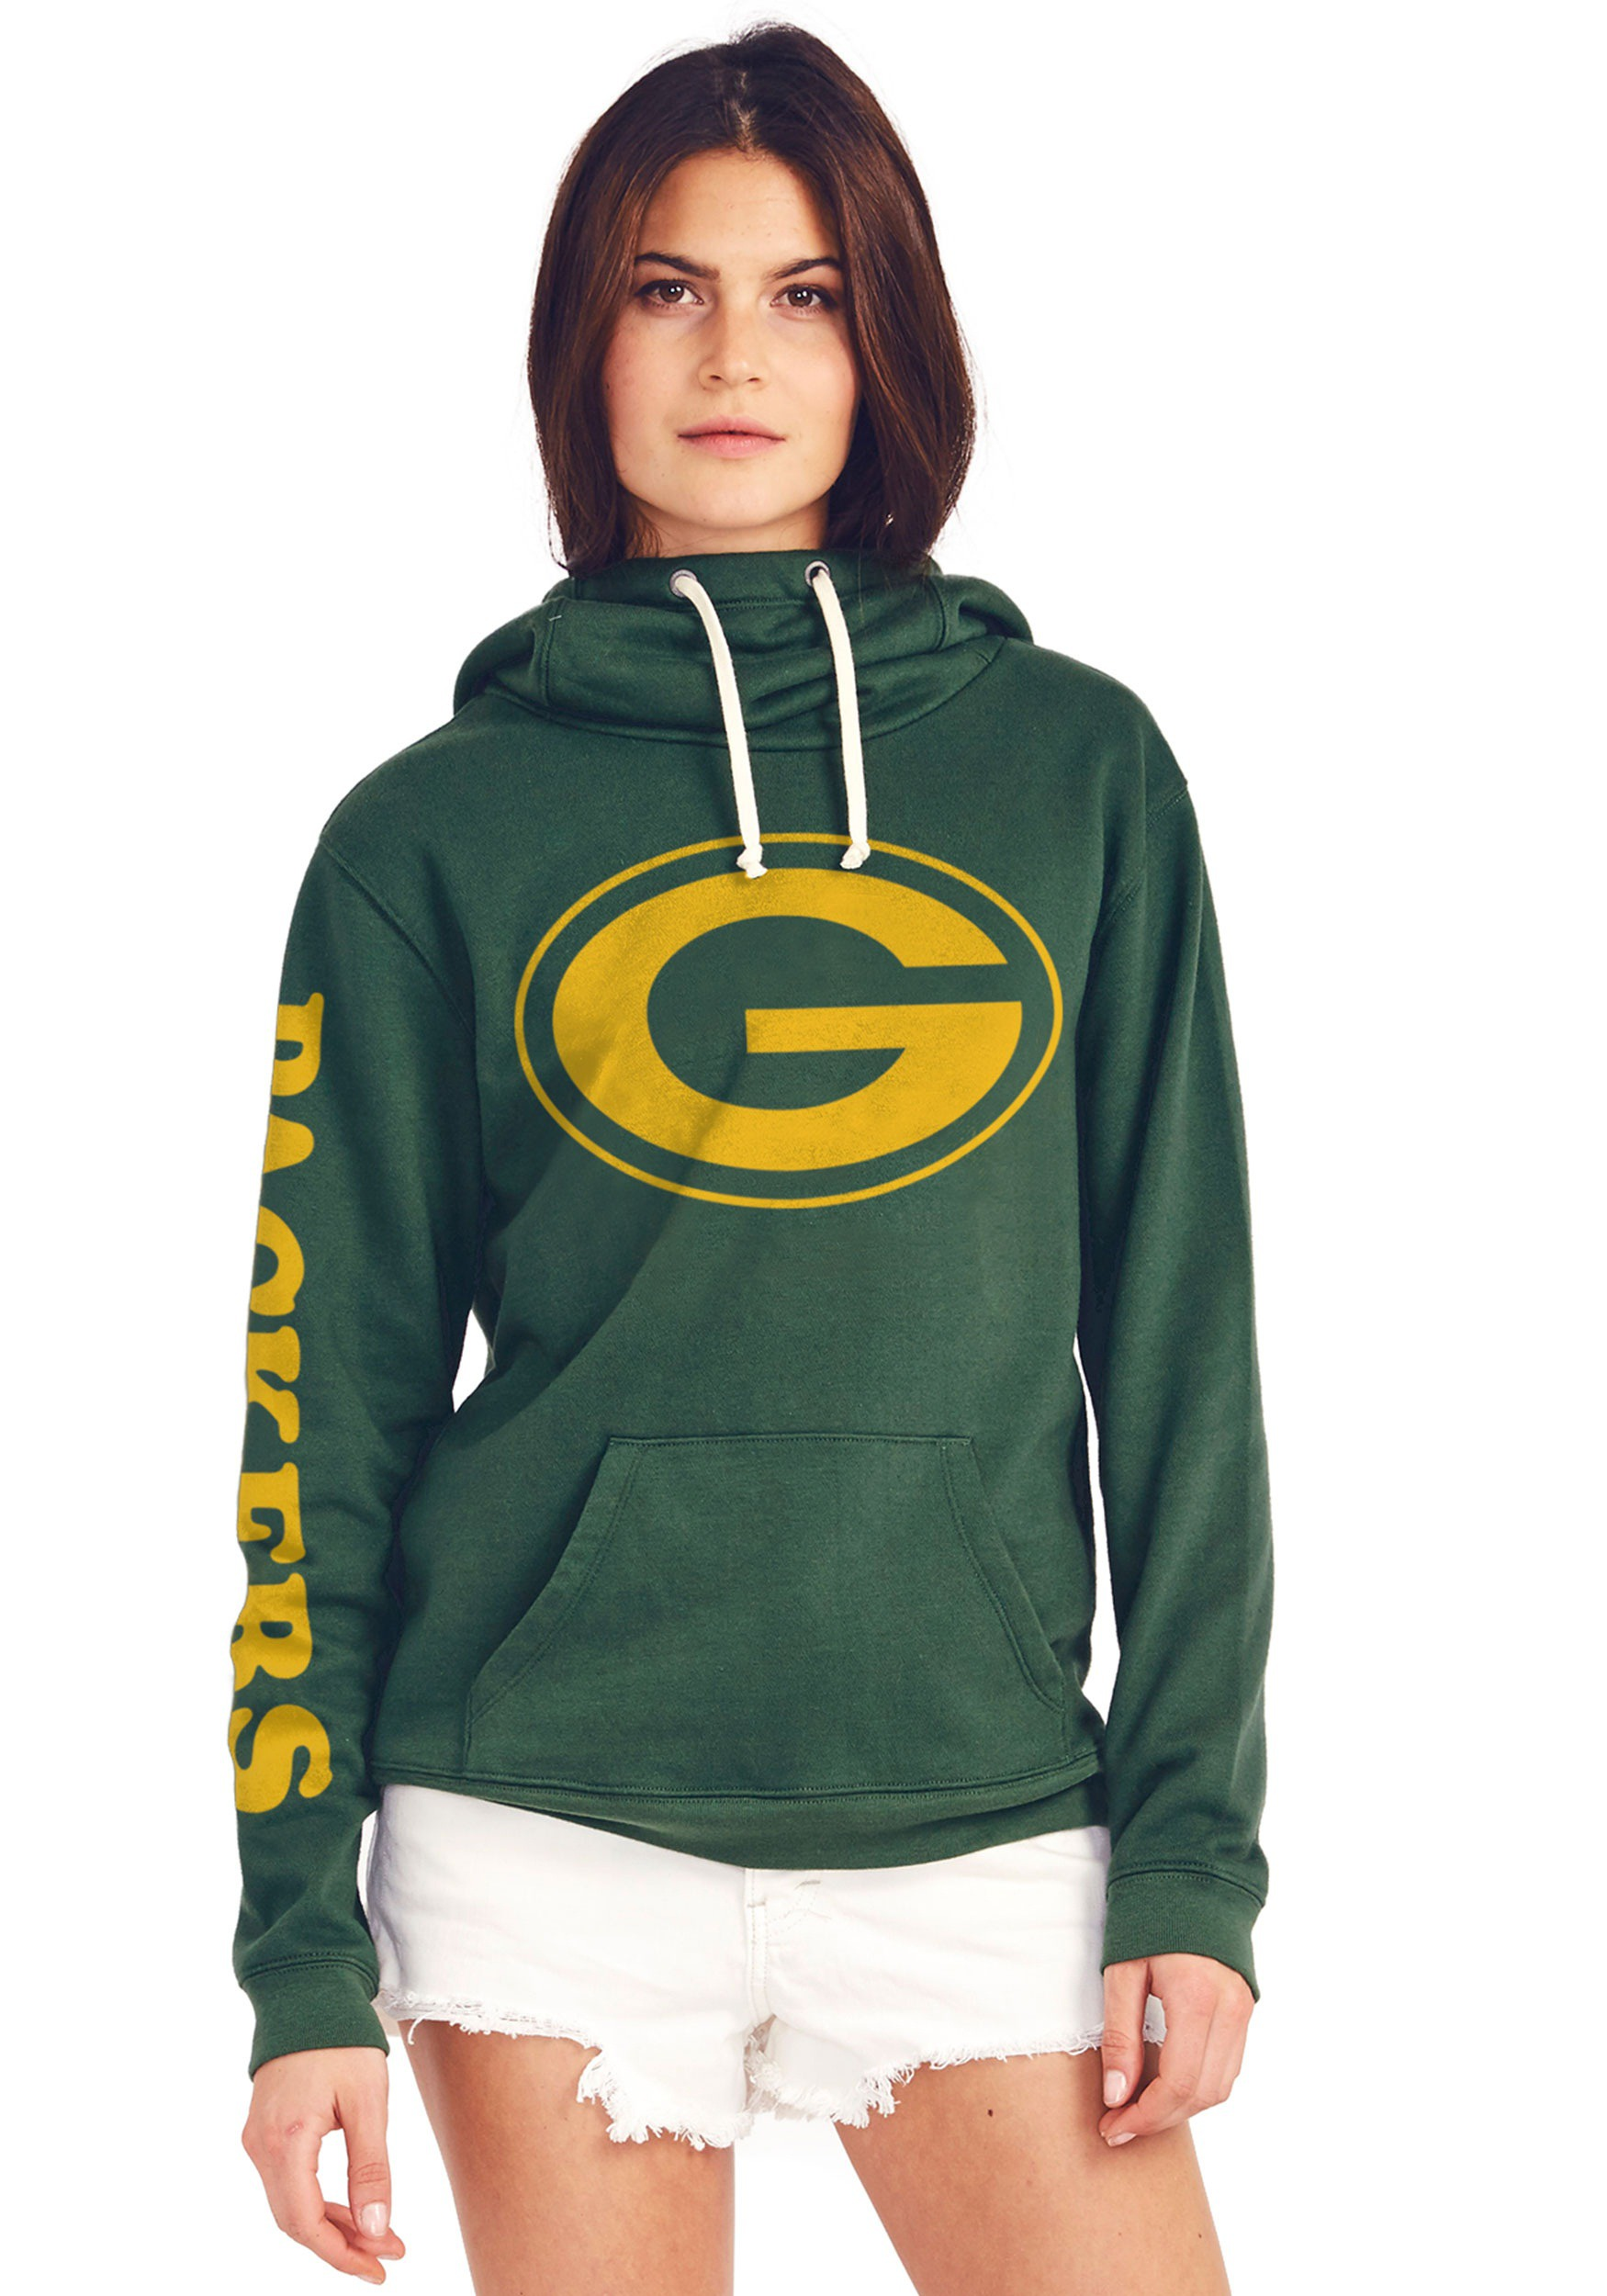 release date bdcbf aeaa3 Green Bay Packers Women's Cowl Neck Hooded Sweatshirt